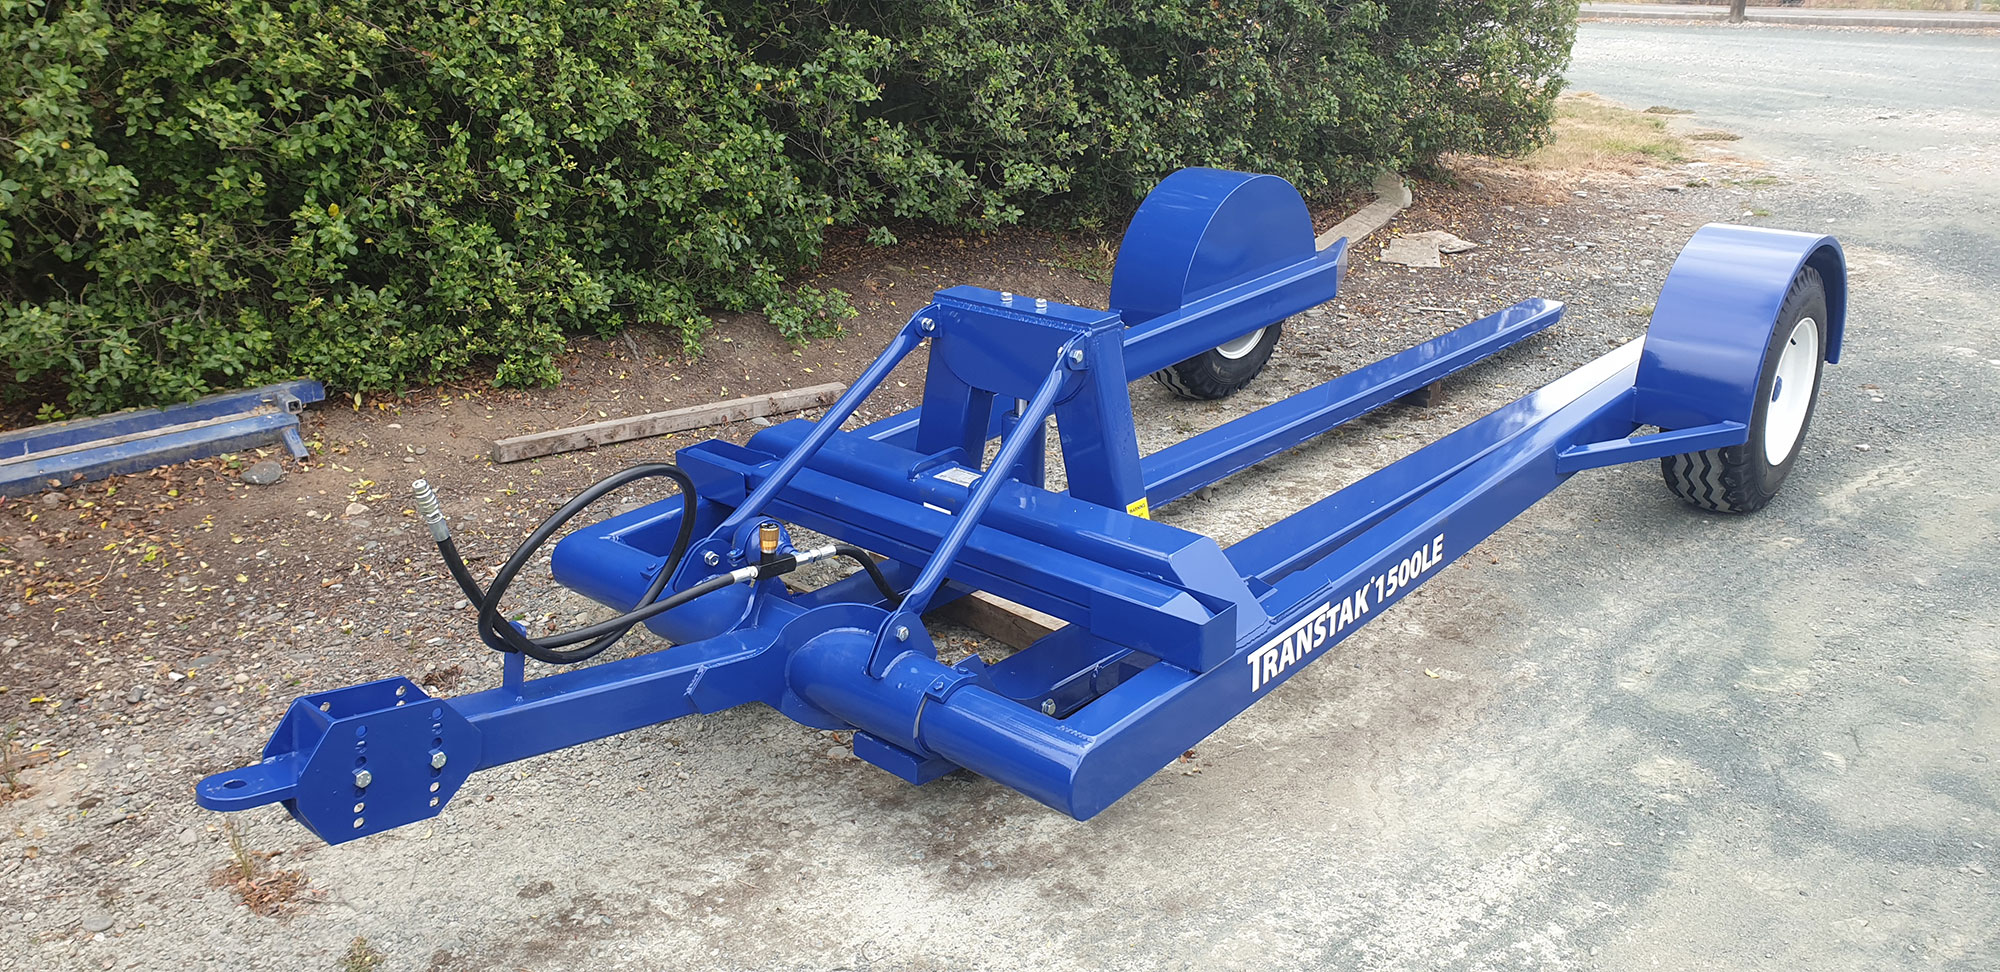 TRANSTAK 1500LE Fruit Bin Carrier Trailer